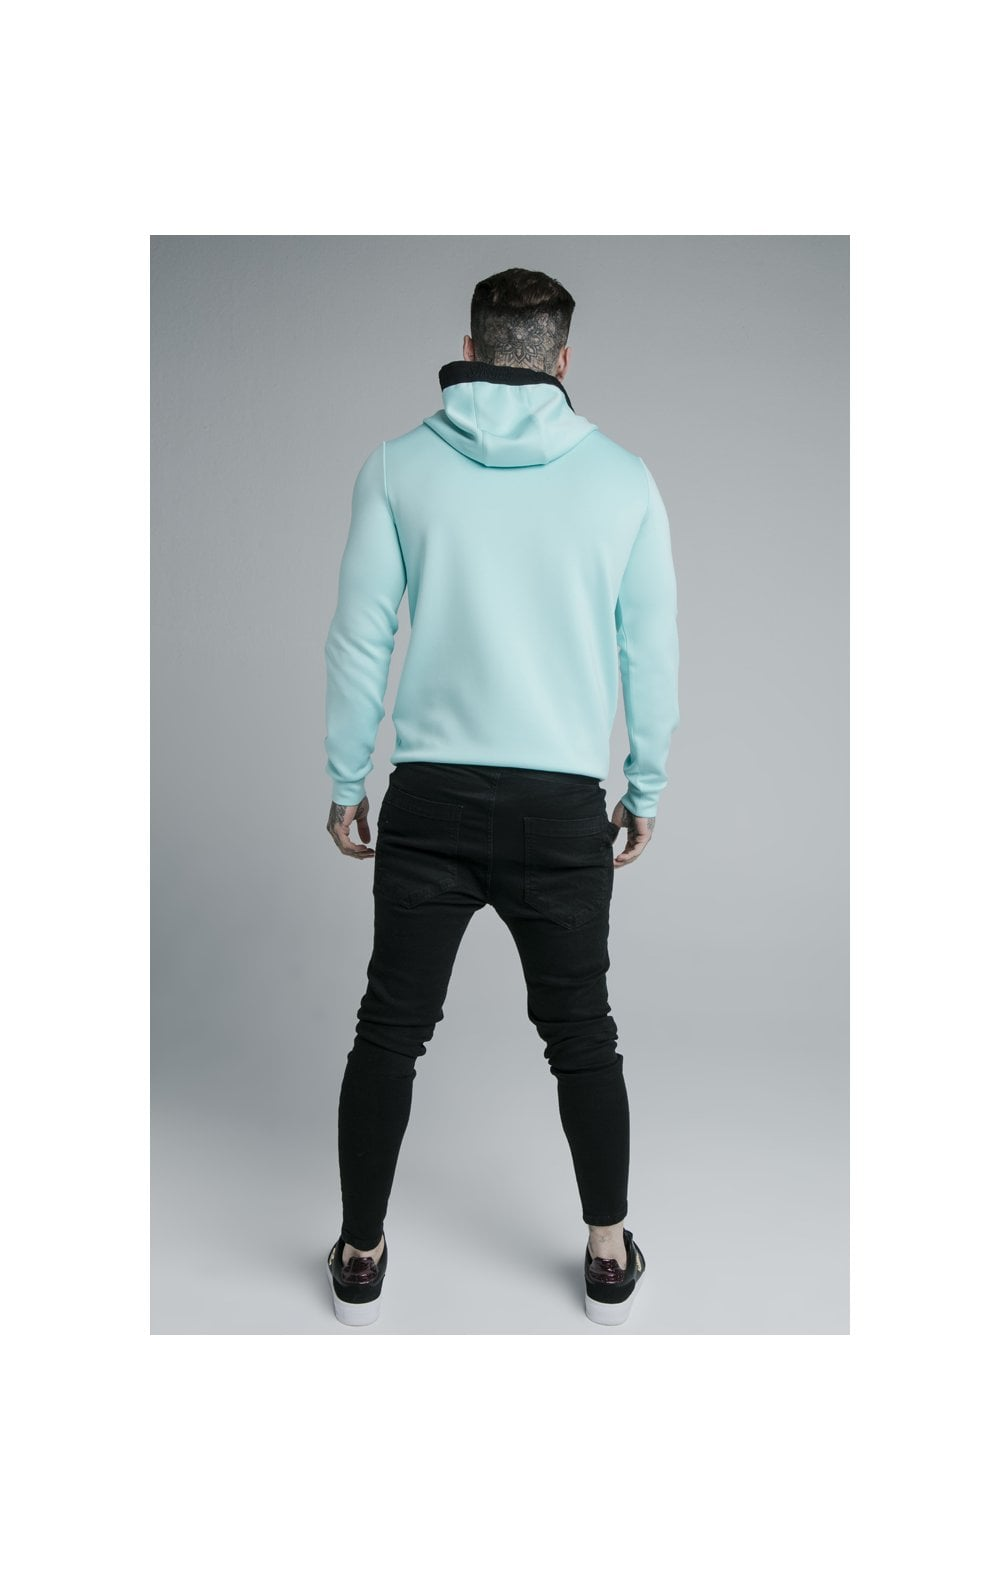 Load image into Gallery viewer, SikSilk Prestige Overhead Hoodie - Teal (5)